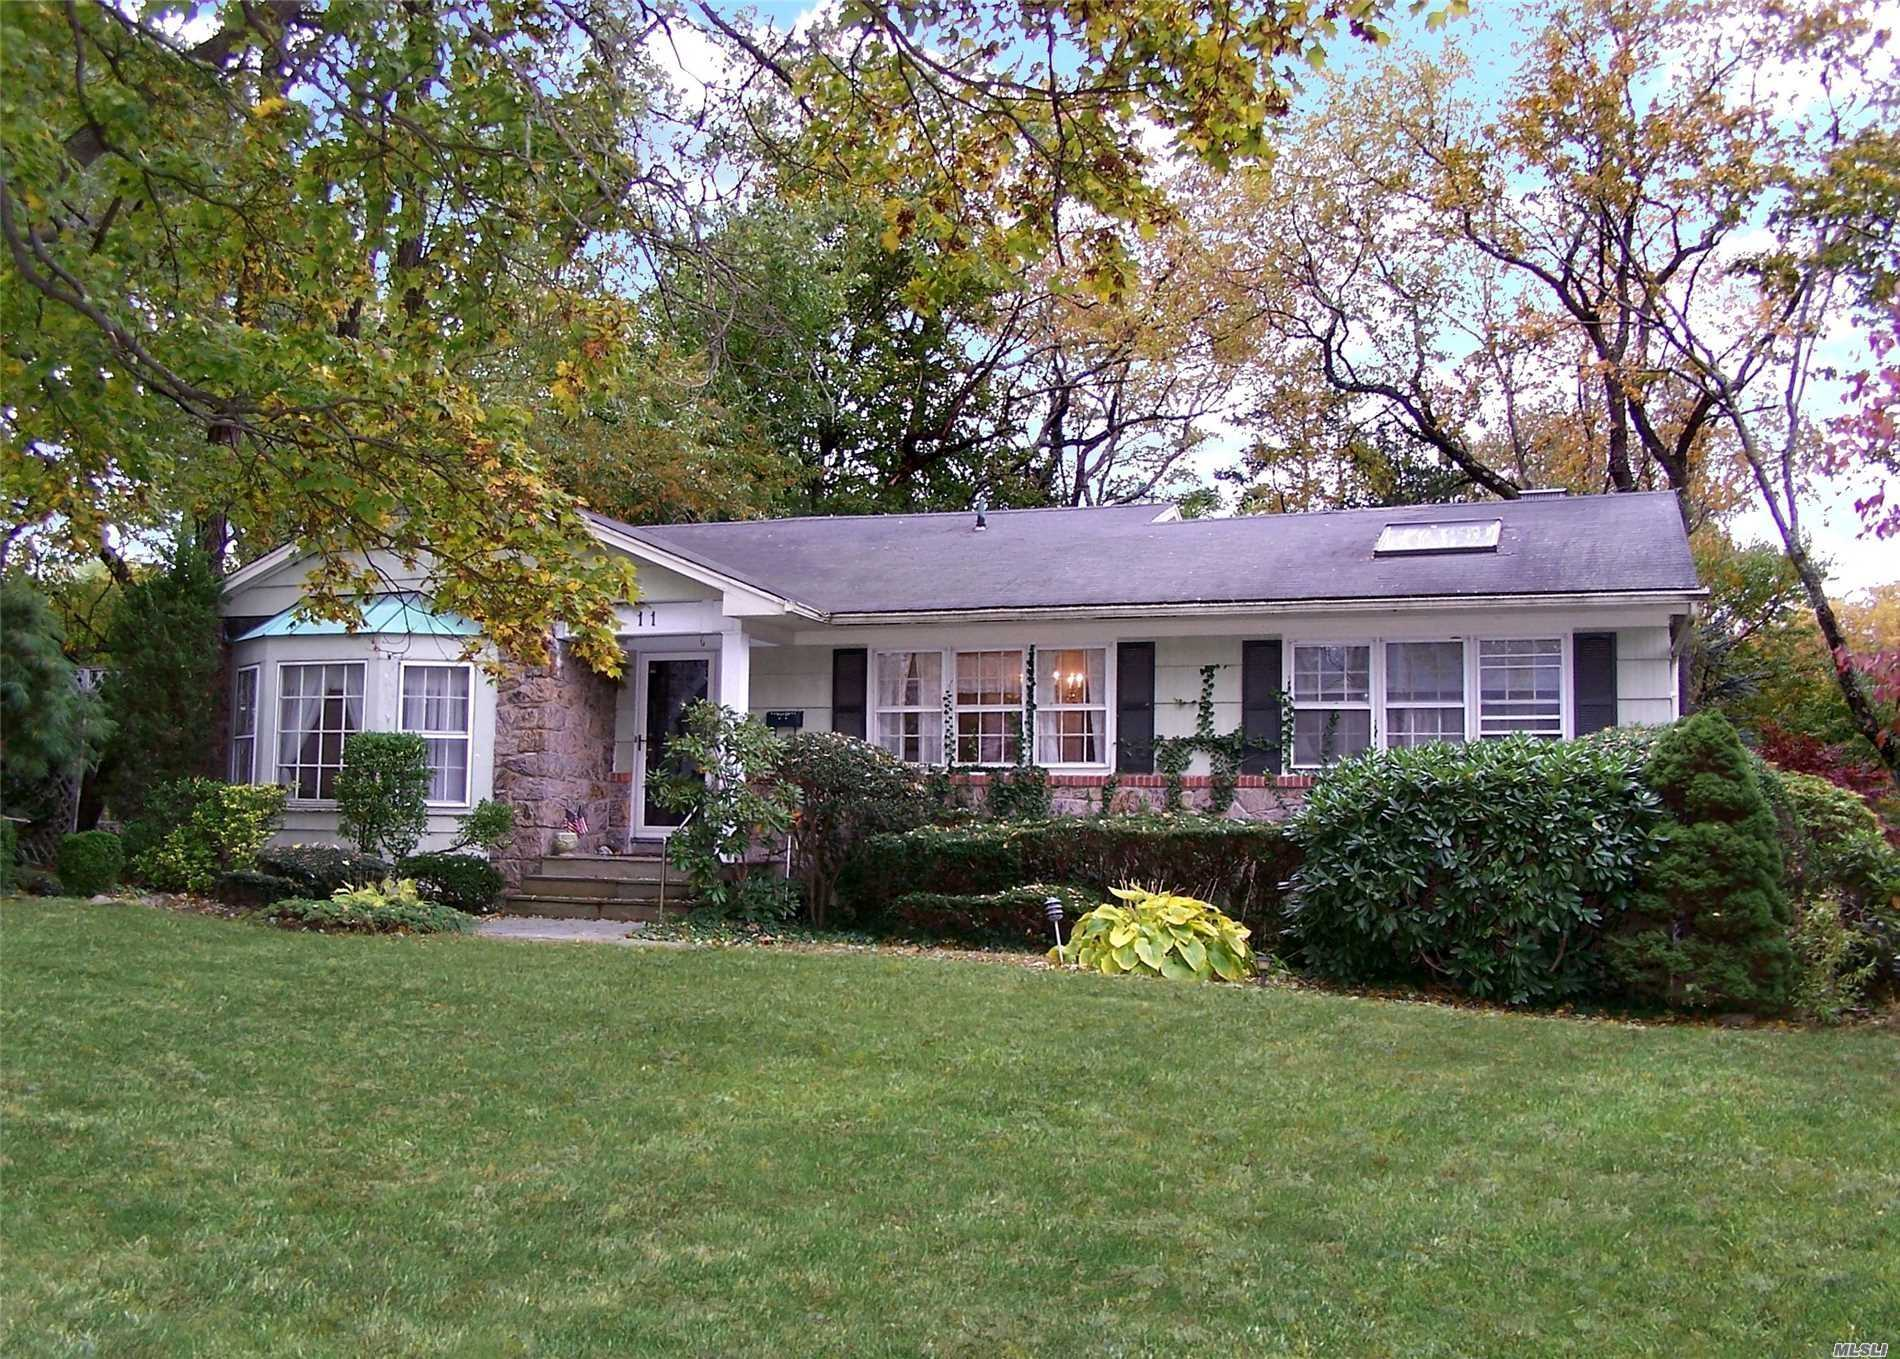 Lovely Ranch In Famed Flower Hill Section Of Desirable Port Washington!!! Unlimitied Possibilites To Make Your Own Or To Build!! Eat In Kitchen, Formal Dining Rm, W/Large Living Rm, Den W/Fireplace, Master Suite W/Full Bath, 3 Additional Bedrooms & Full Bath. Walking Distance To North Hempstead Country Club & Golf Course! Close To Town, Hospital, Major Highways, Deluxe Shopping And Restaurants!!!